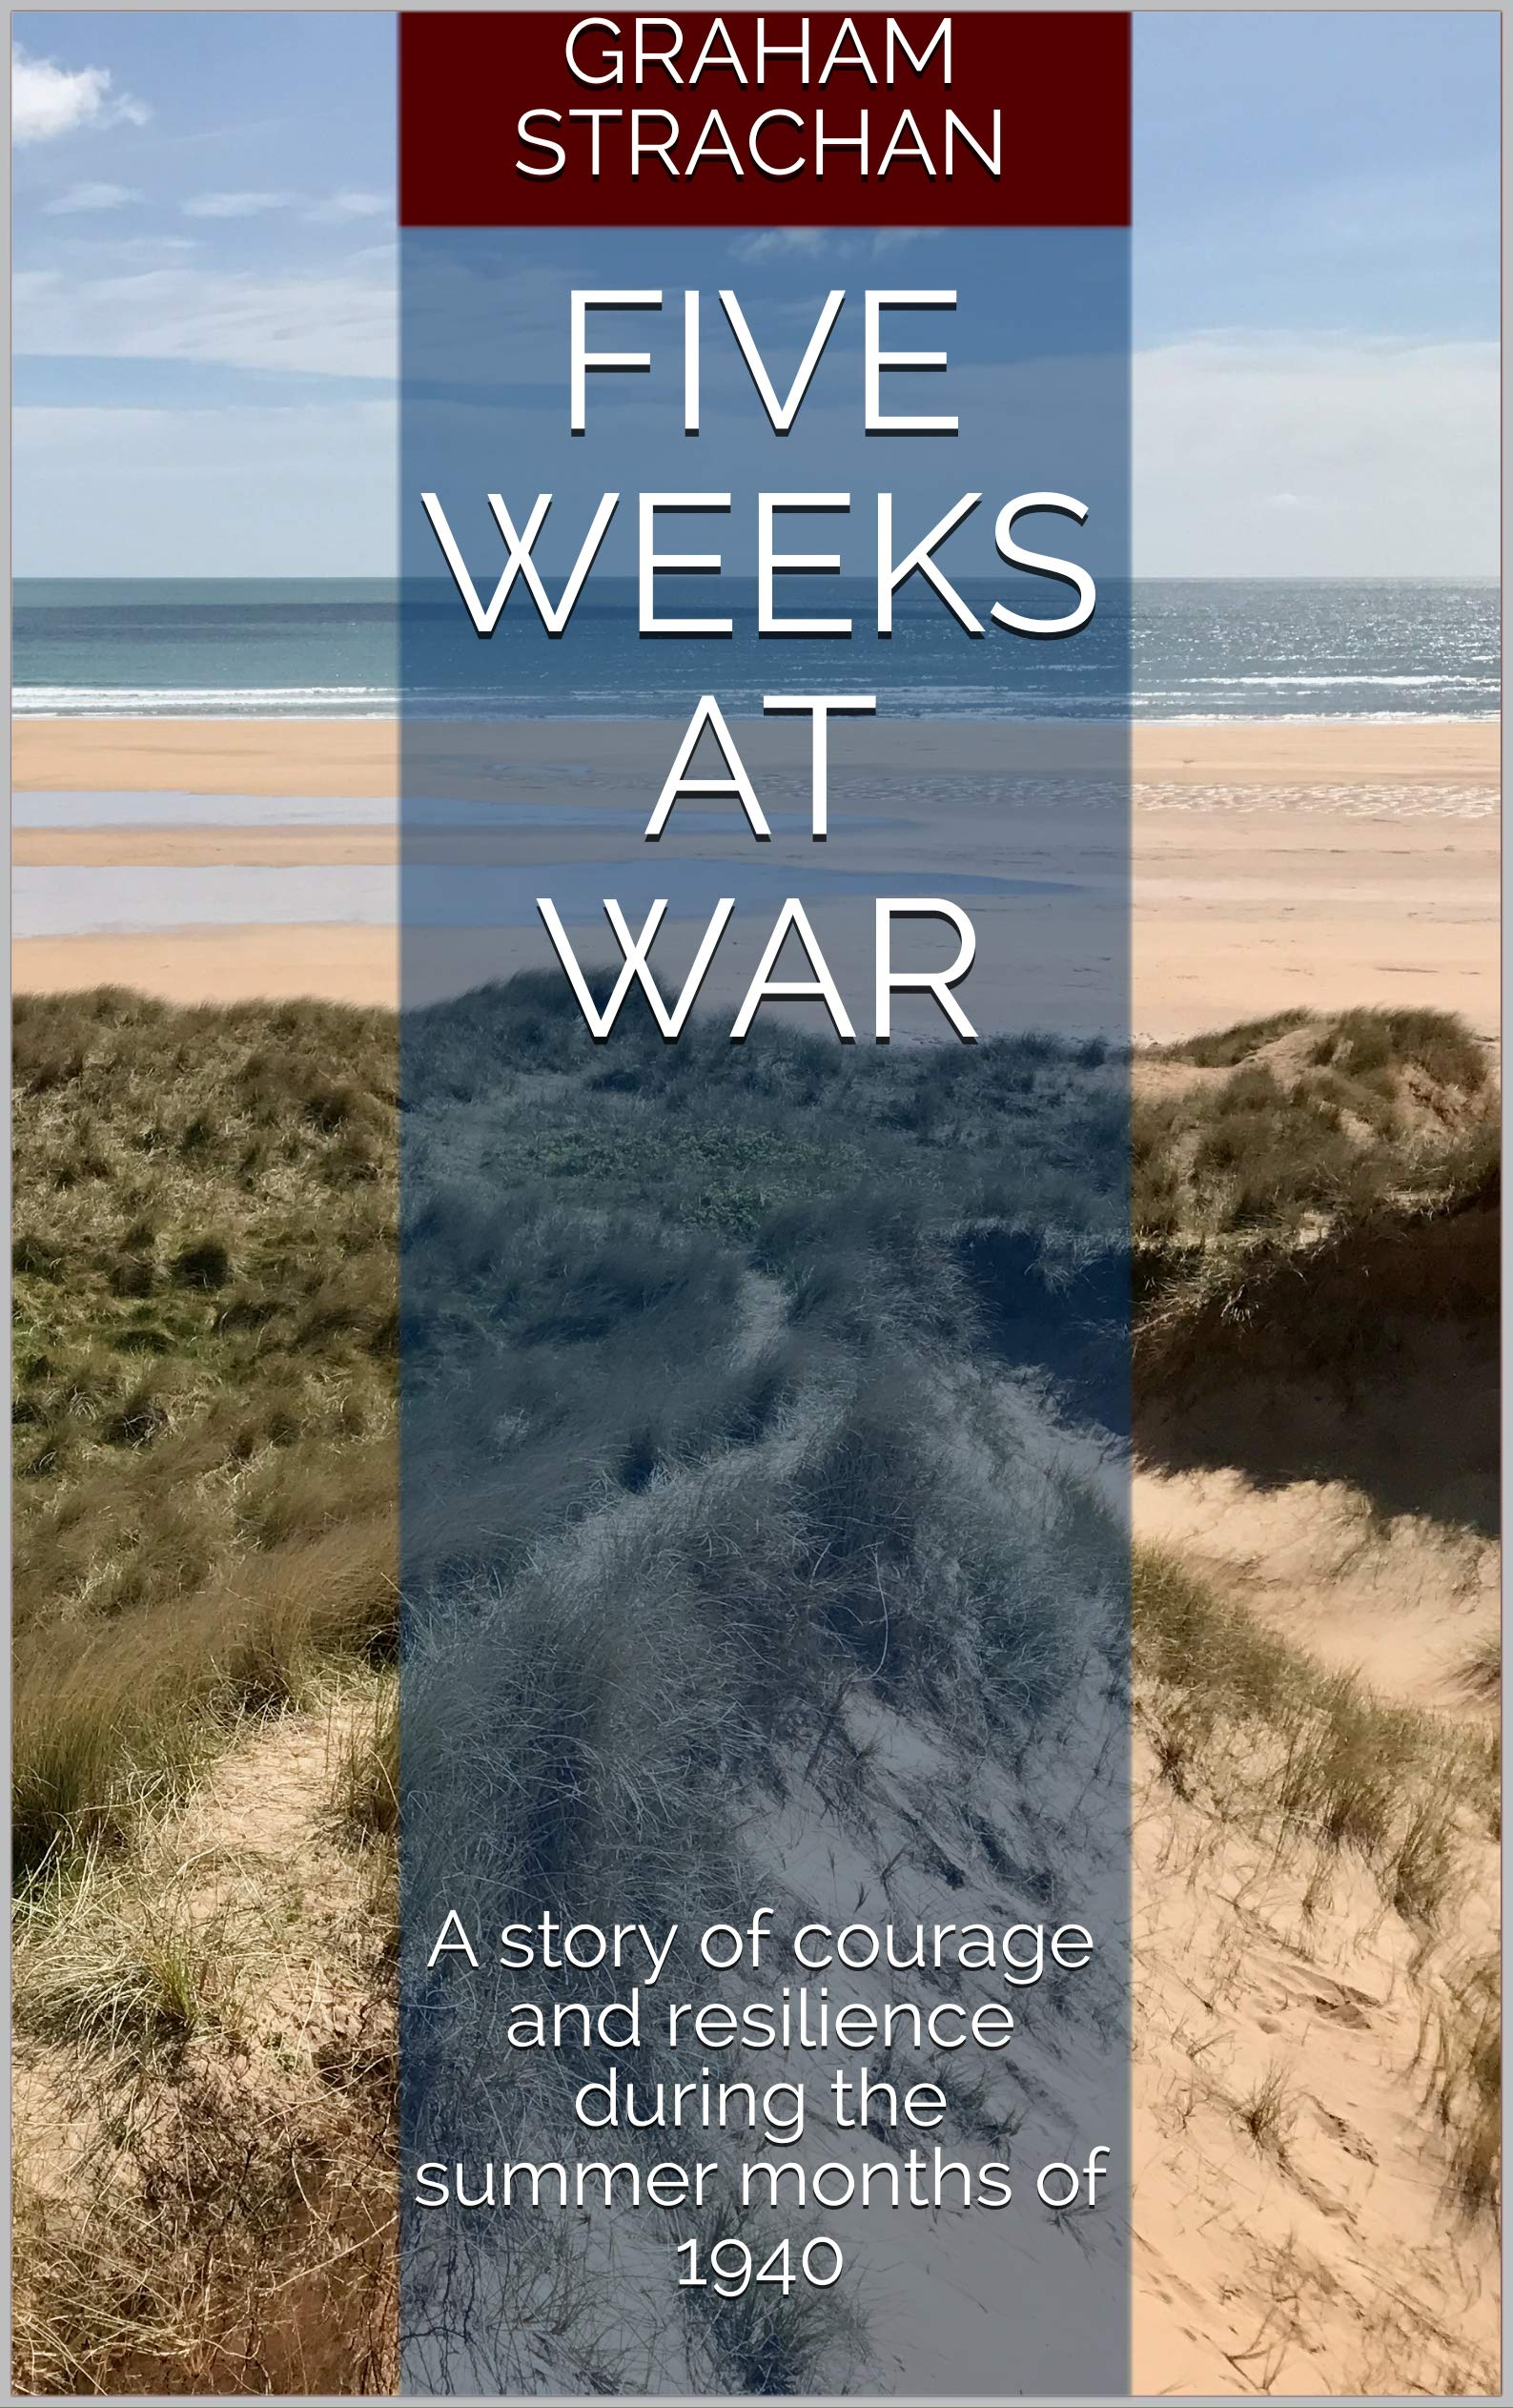 Five Weeks at War: A story of courage and resilience during the summer months of 1940